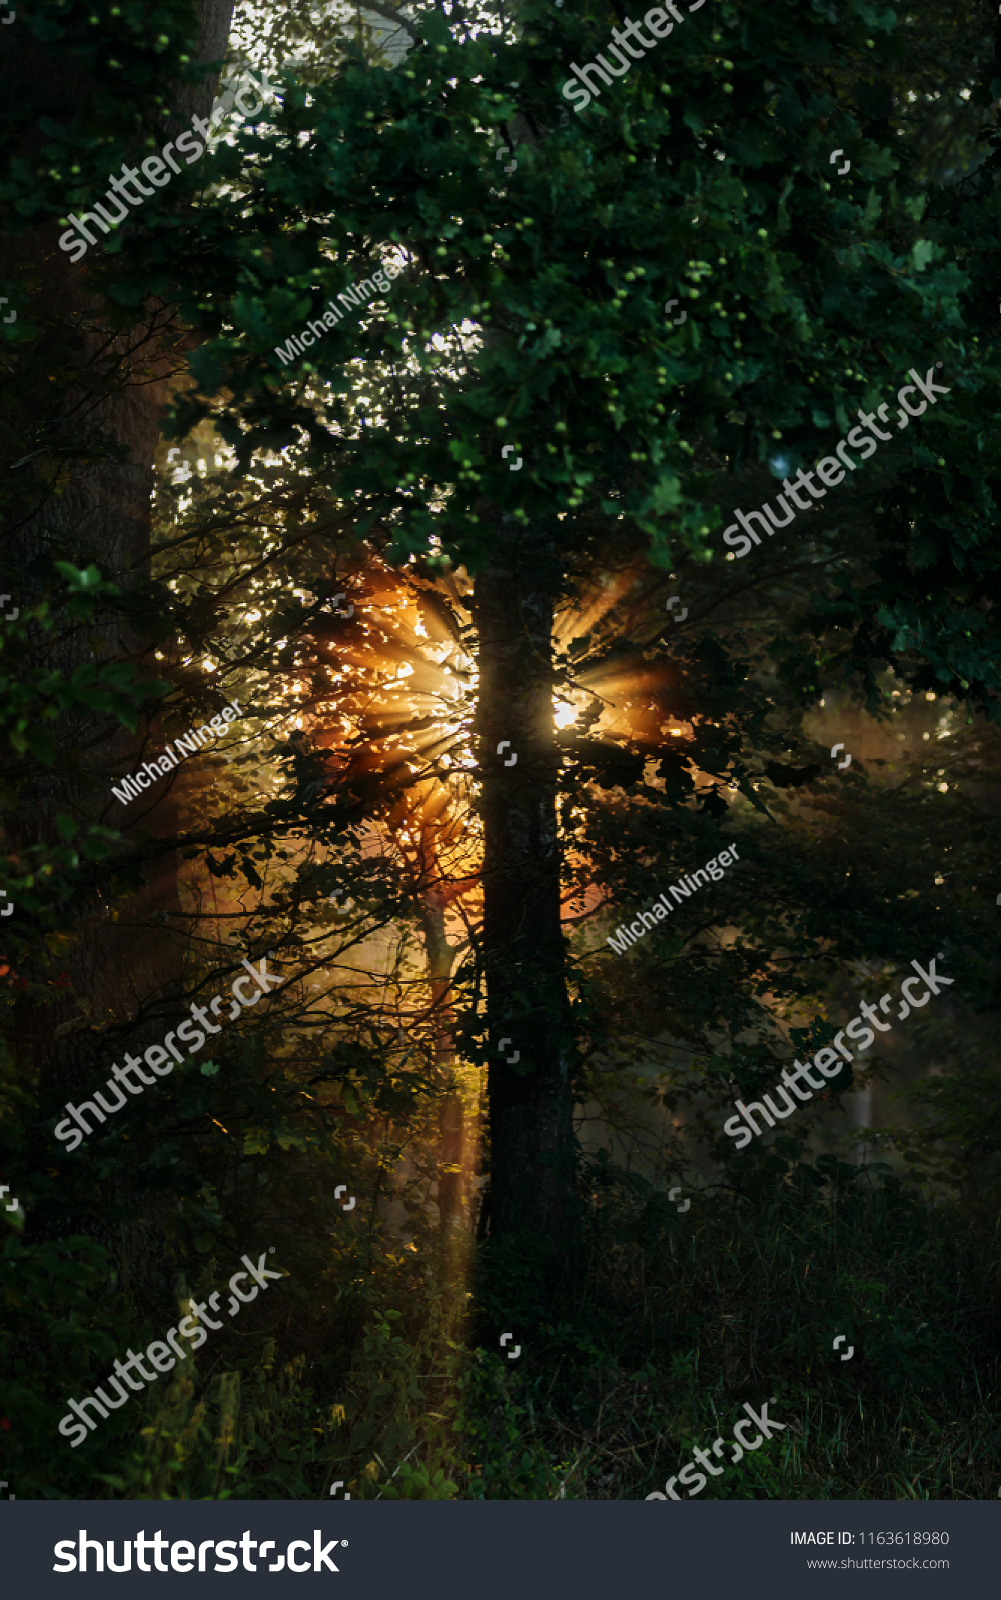 sun rise above river behinde tree